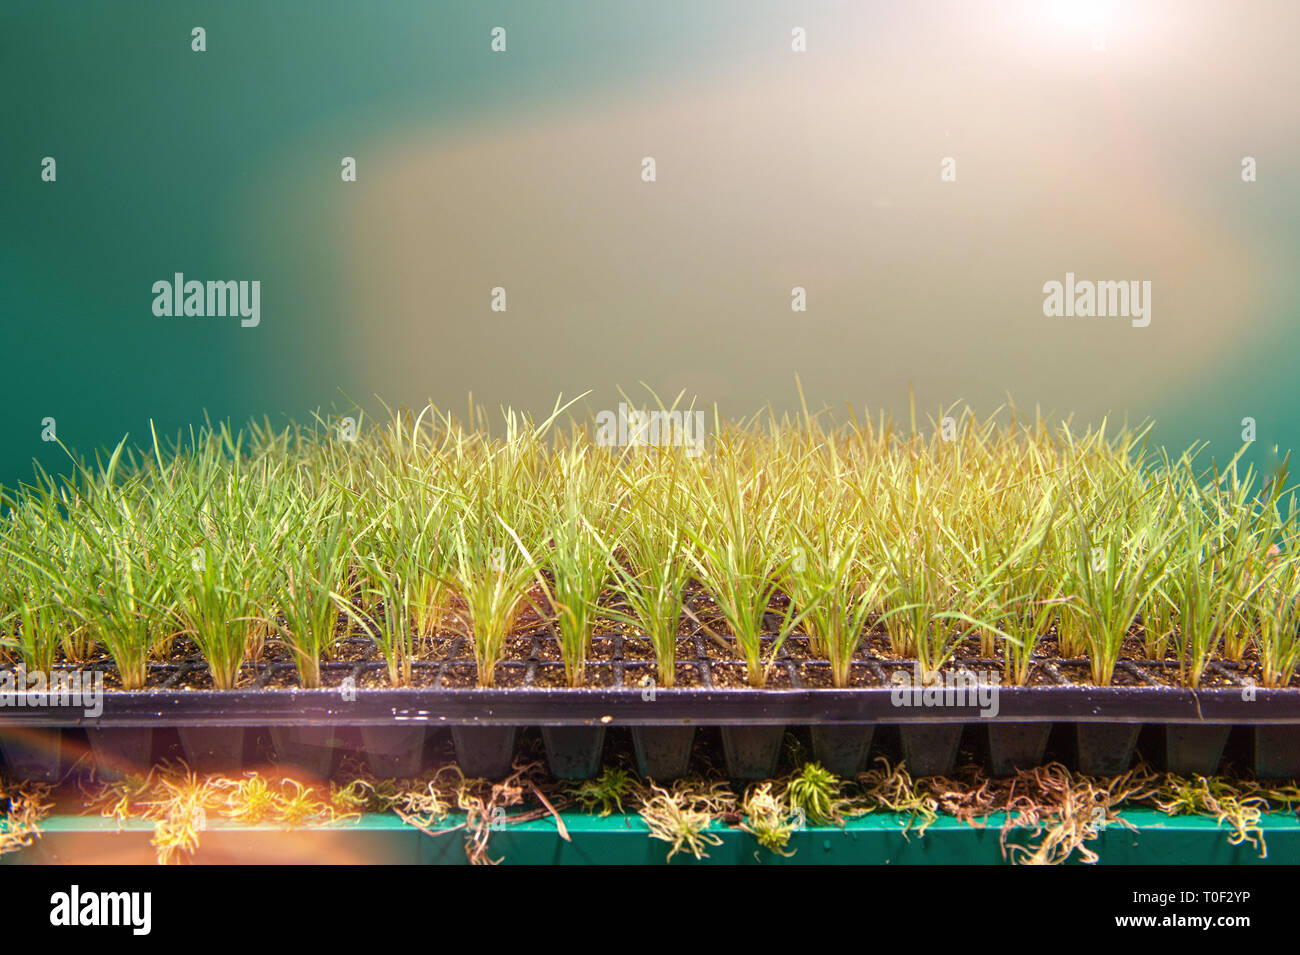 Cassettes for seedlings of aromatic herbs, vegetables and flowers in the greenhouse under additional lighting. - Stock Image